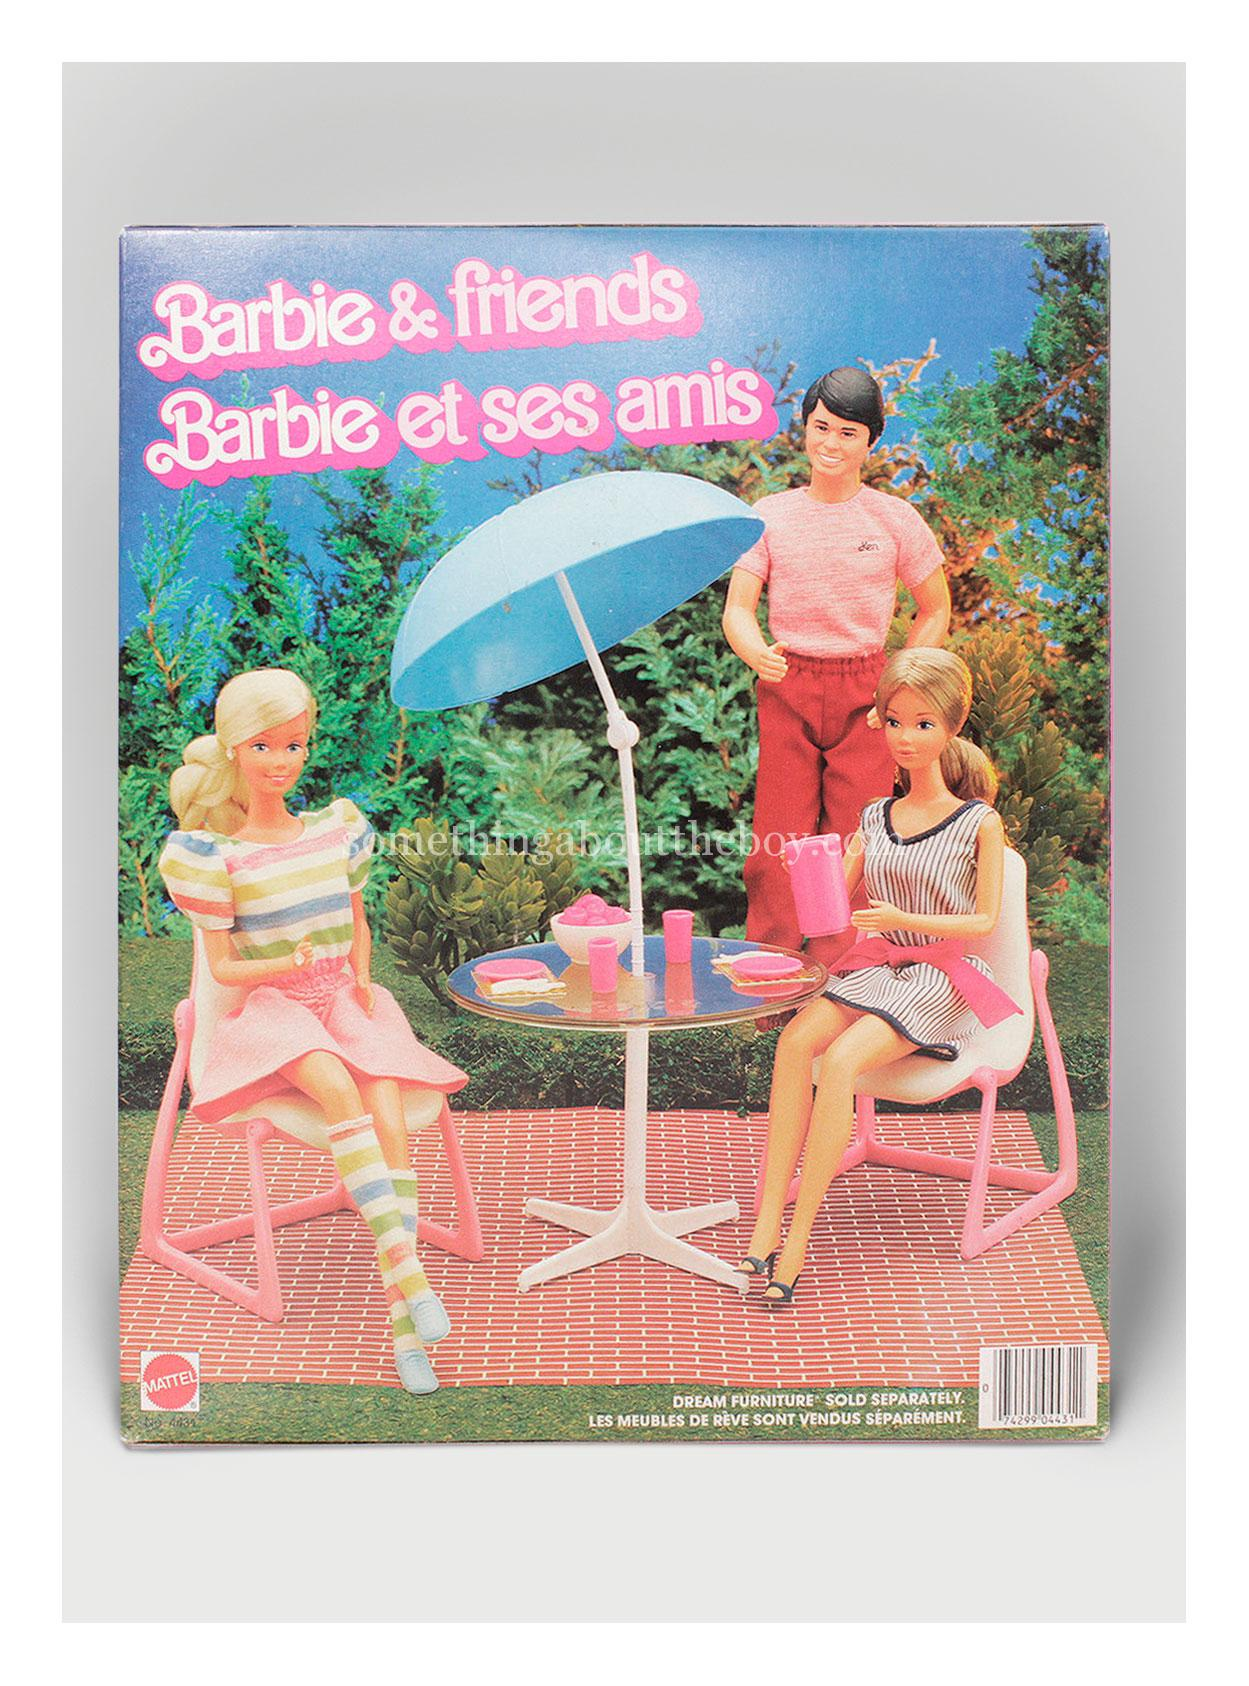 1983 #4431 Barbie & Friends (Canadian version)